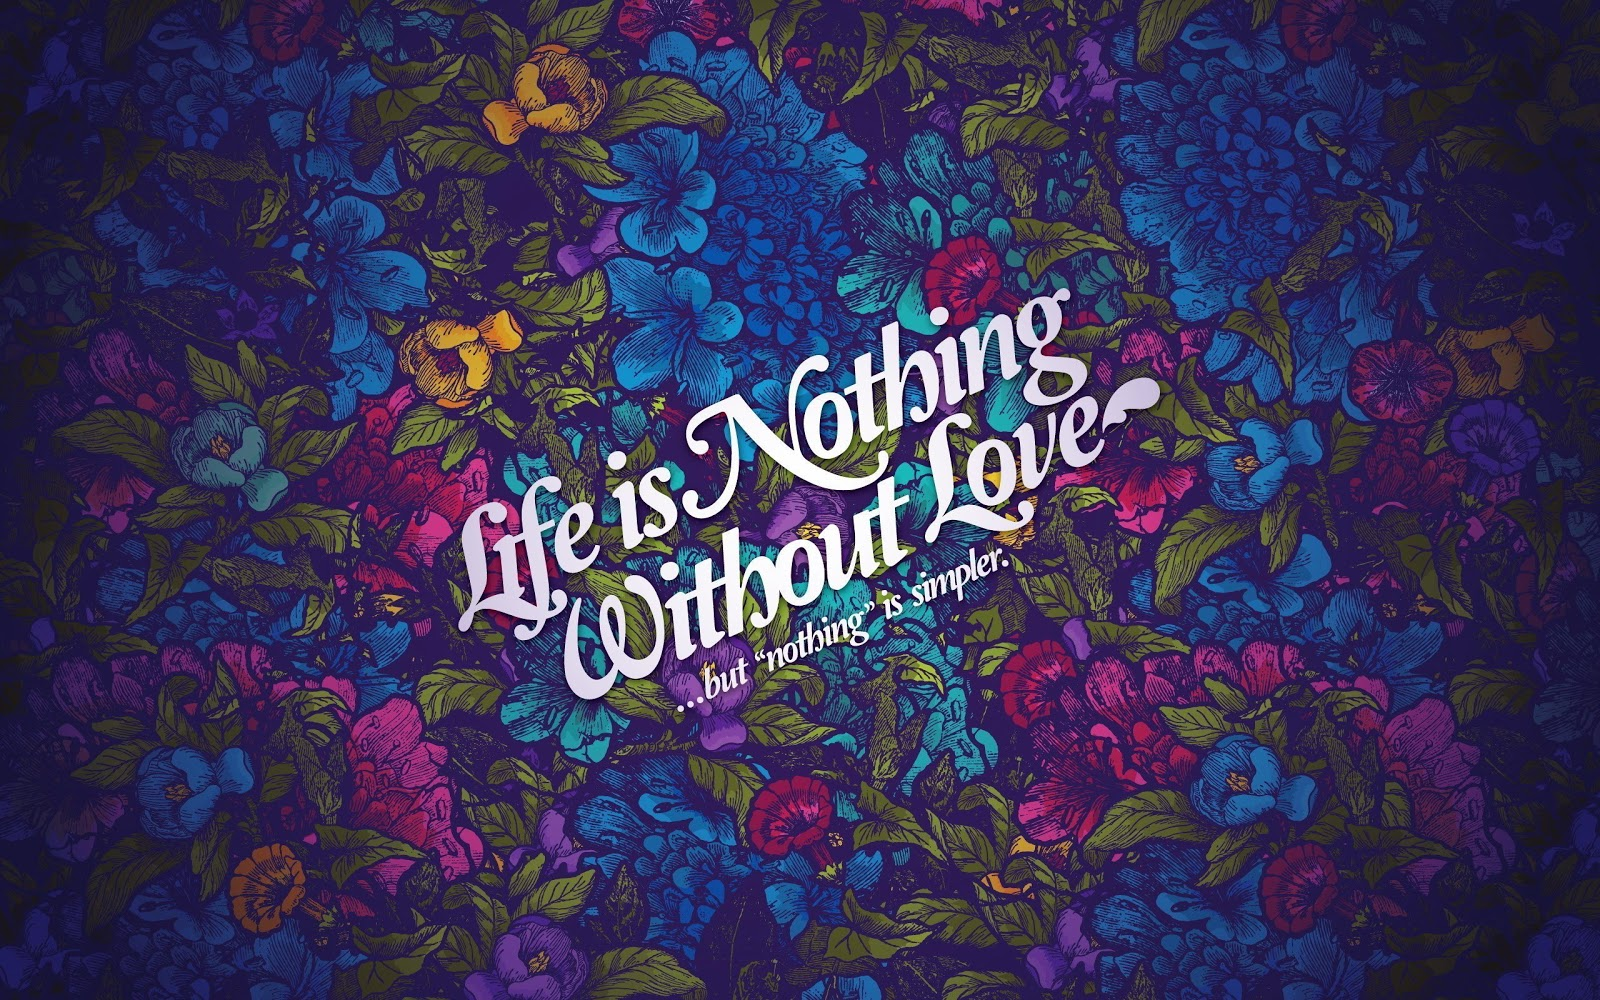 Love Life Wallpapers : HD Wallpaper Download: Love HD Wallpapers - Life Nothing Without Love